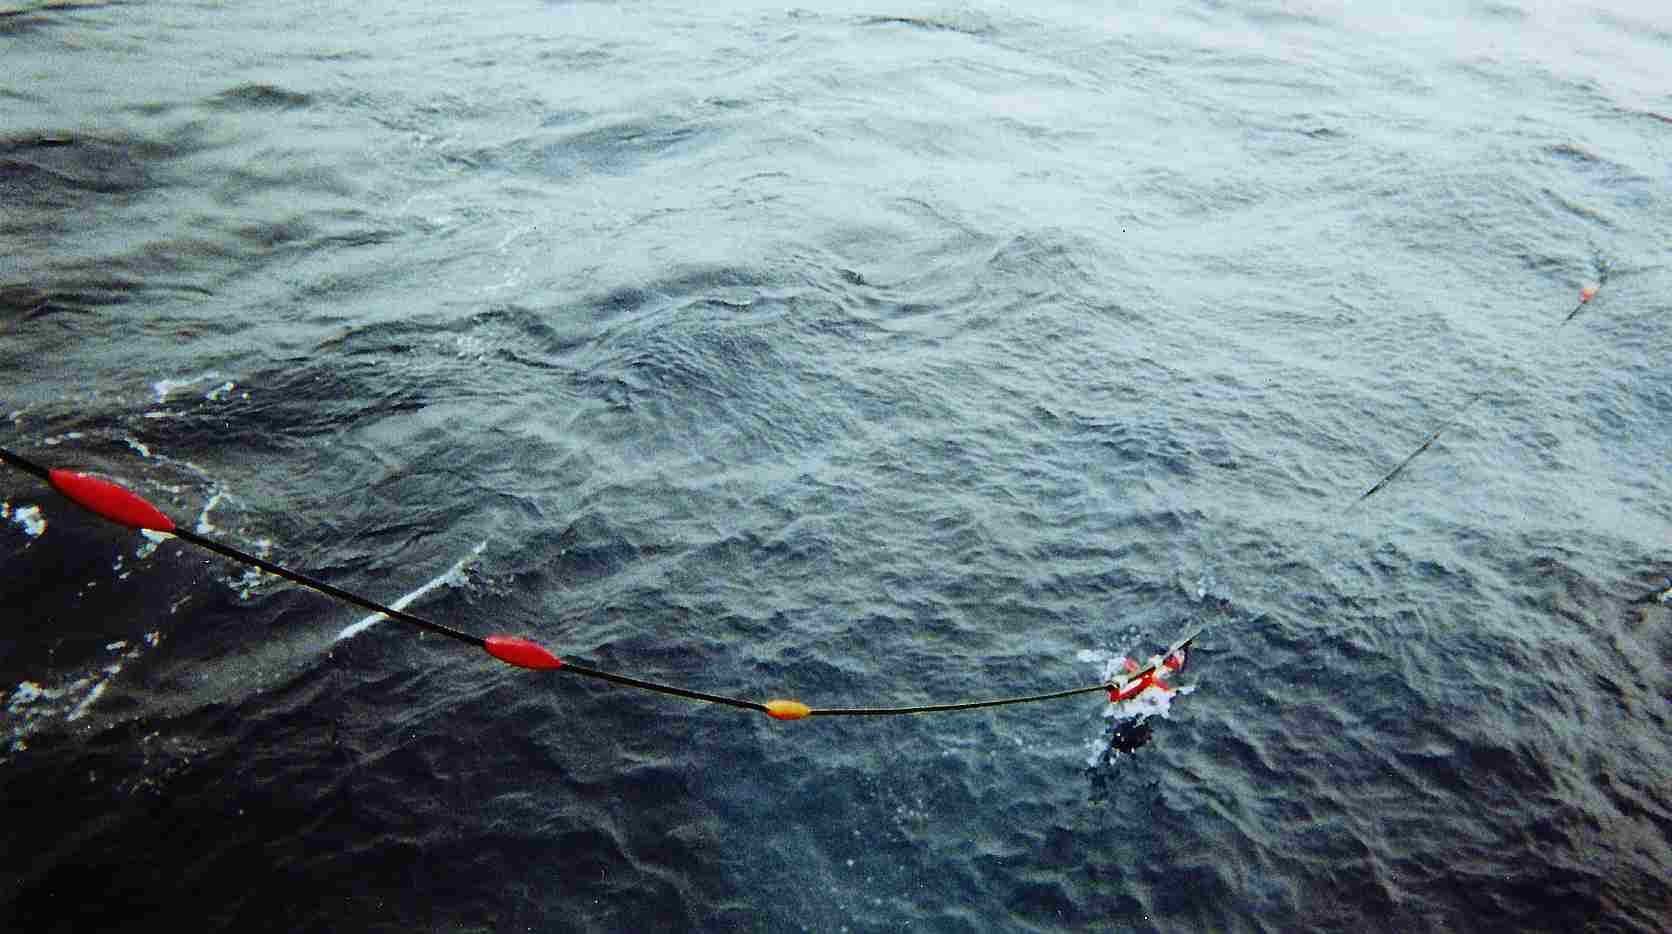 Solid streamer cable towed hydrophone array